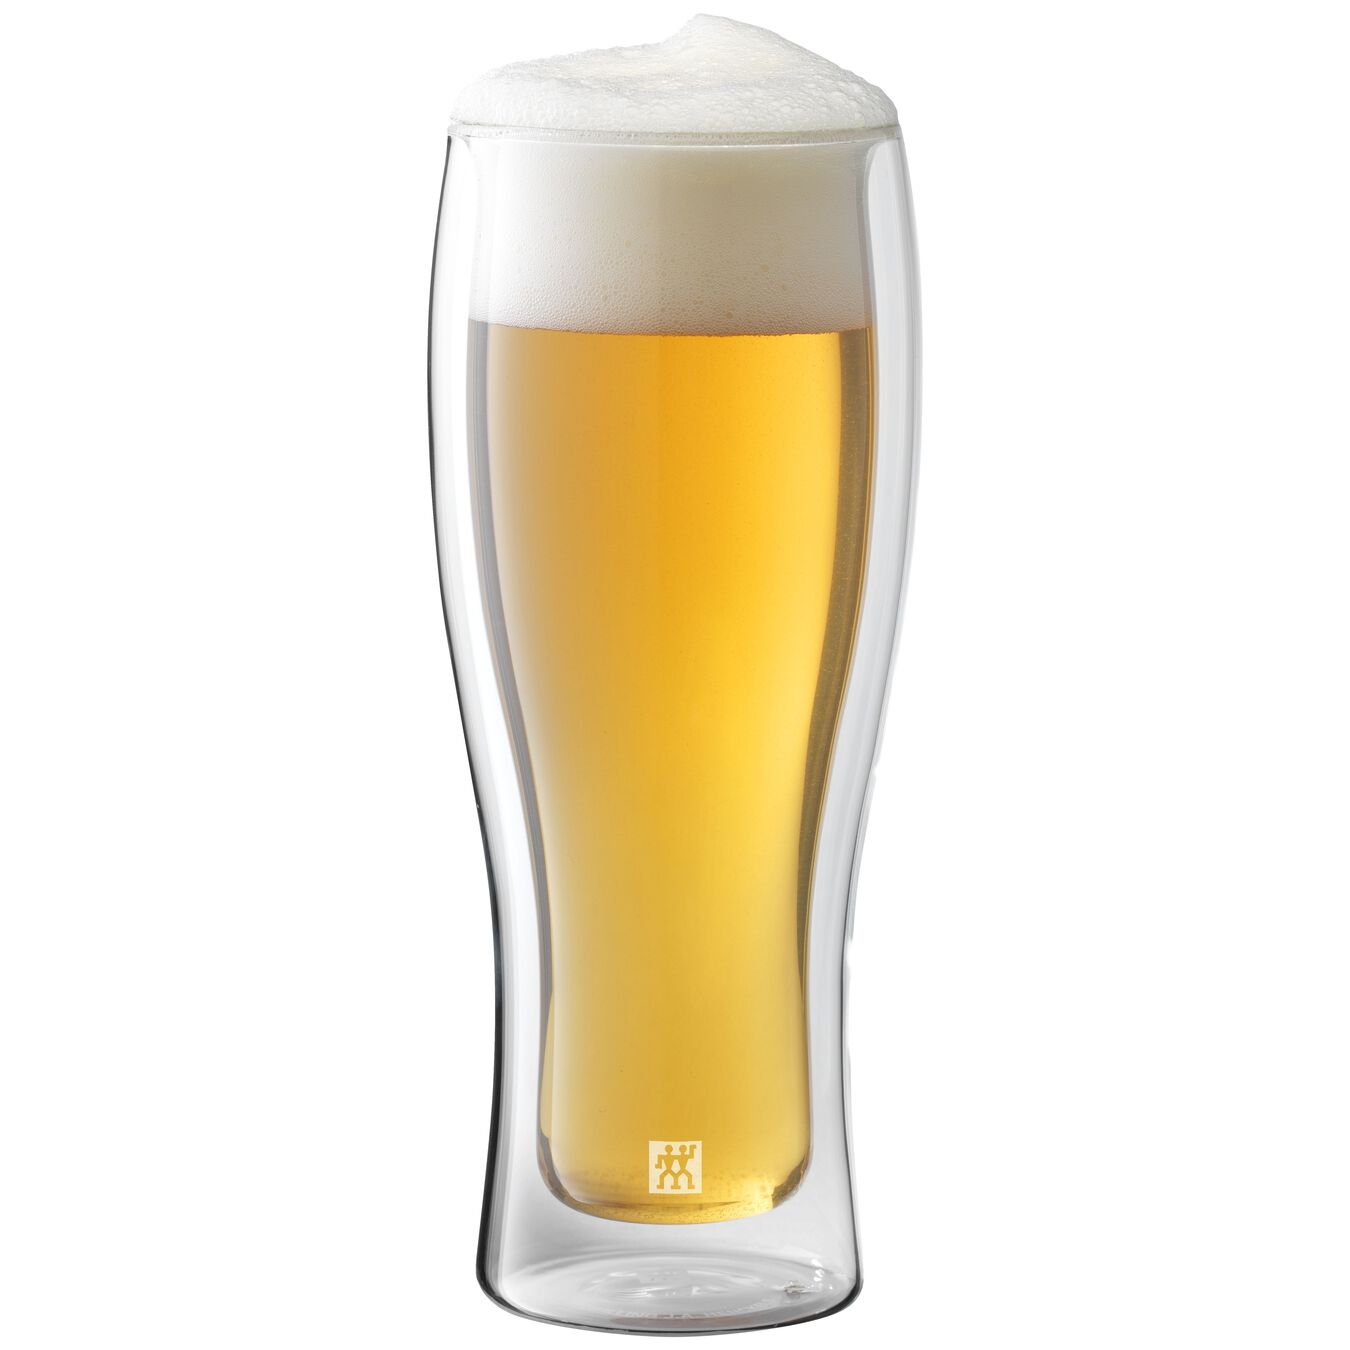 2 Piece Double-Wall Beer Glass Set,,large 2